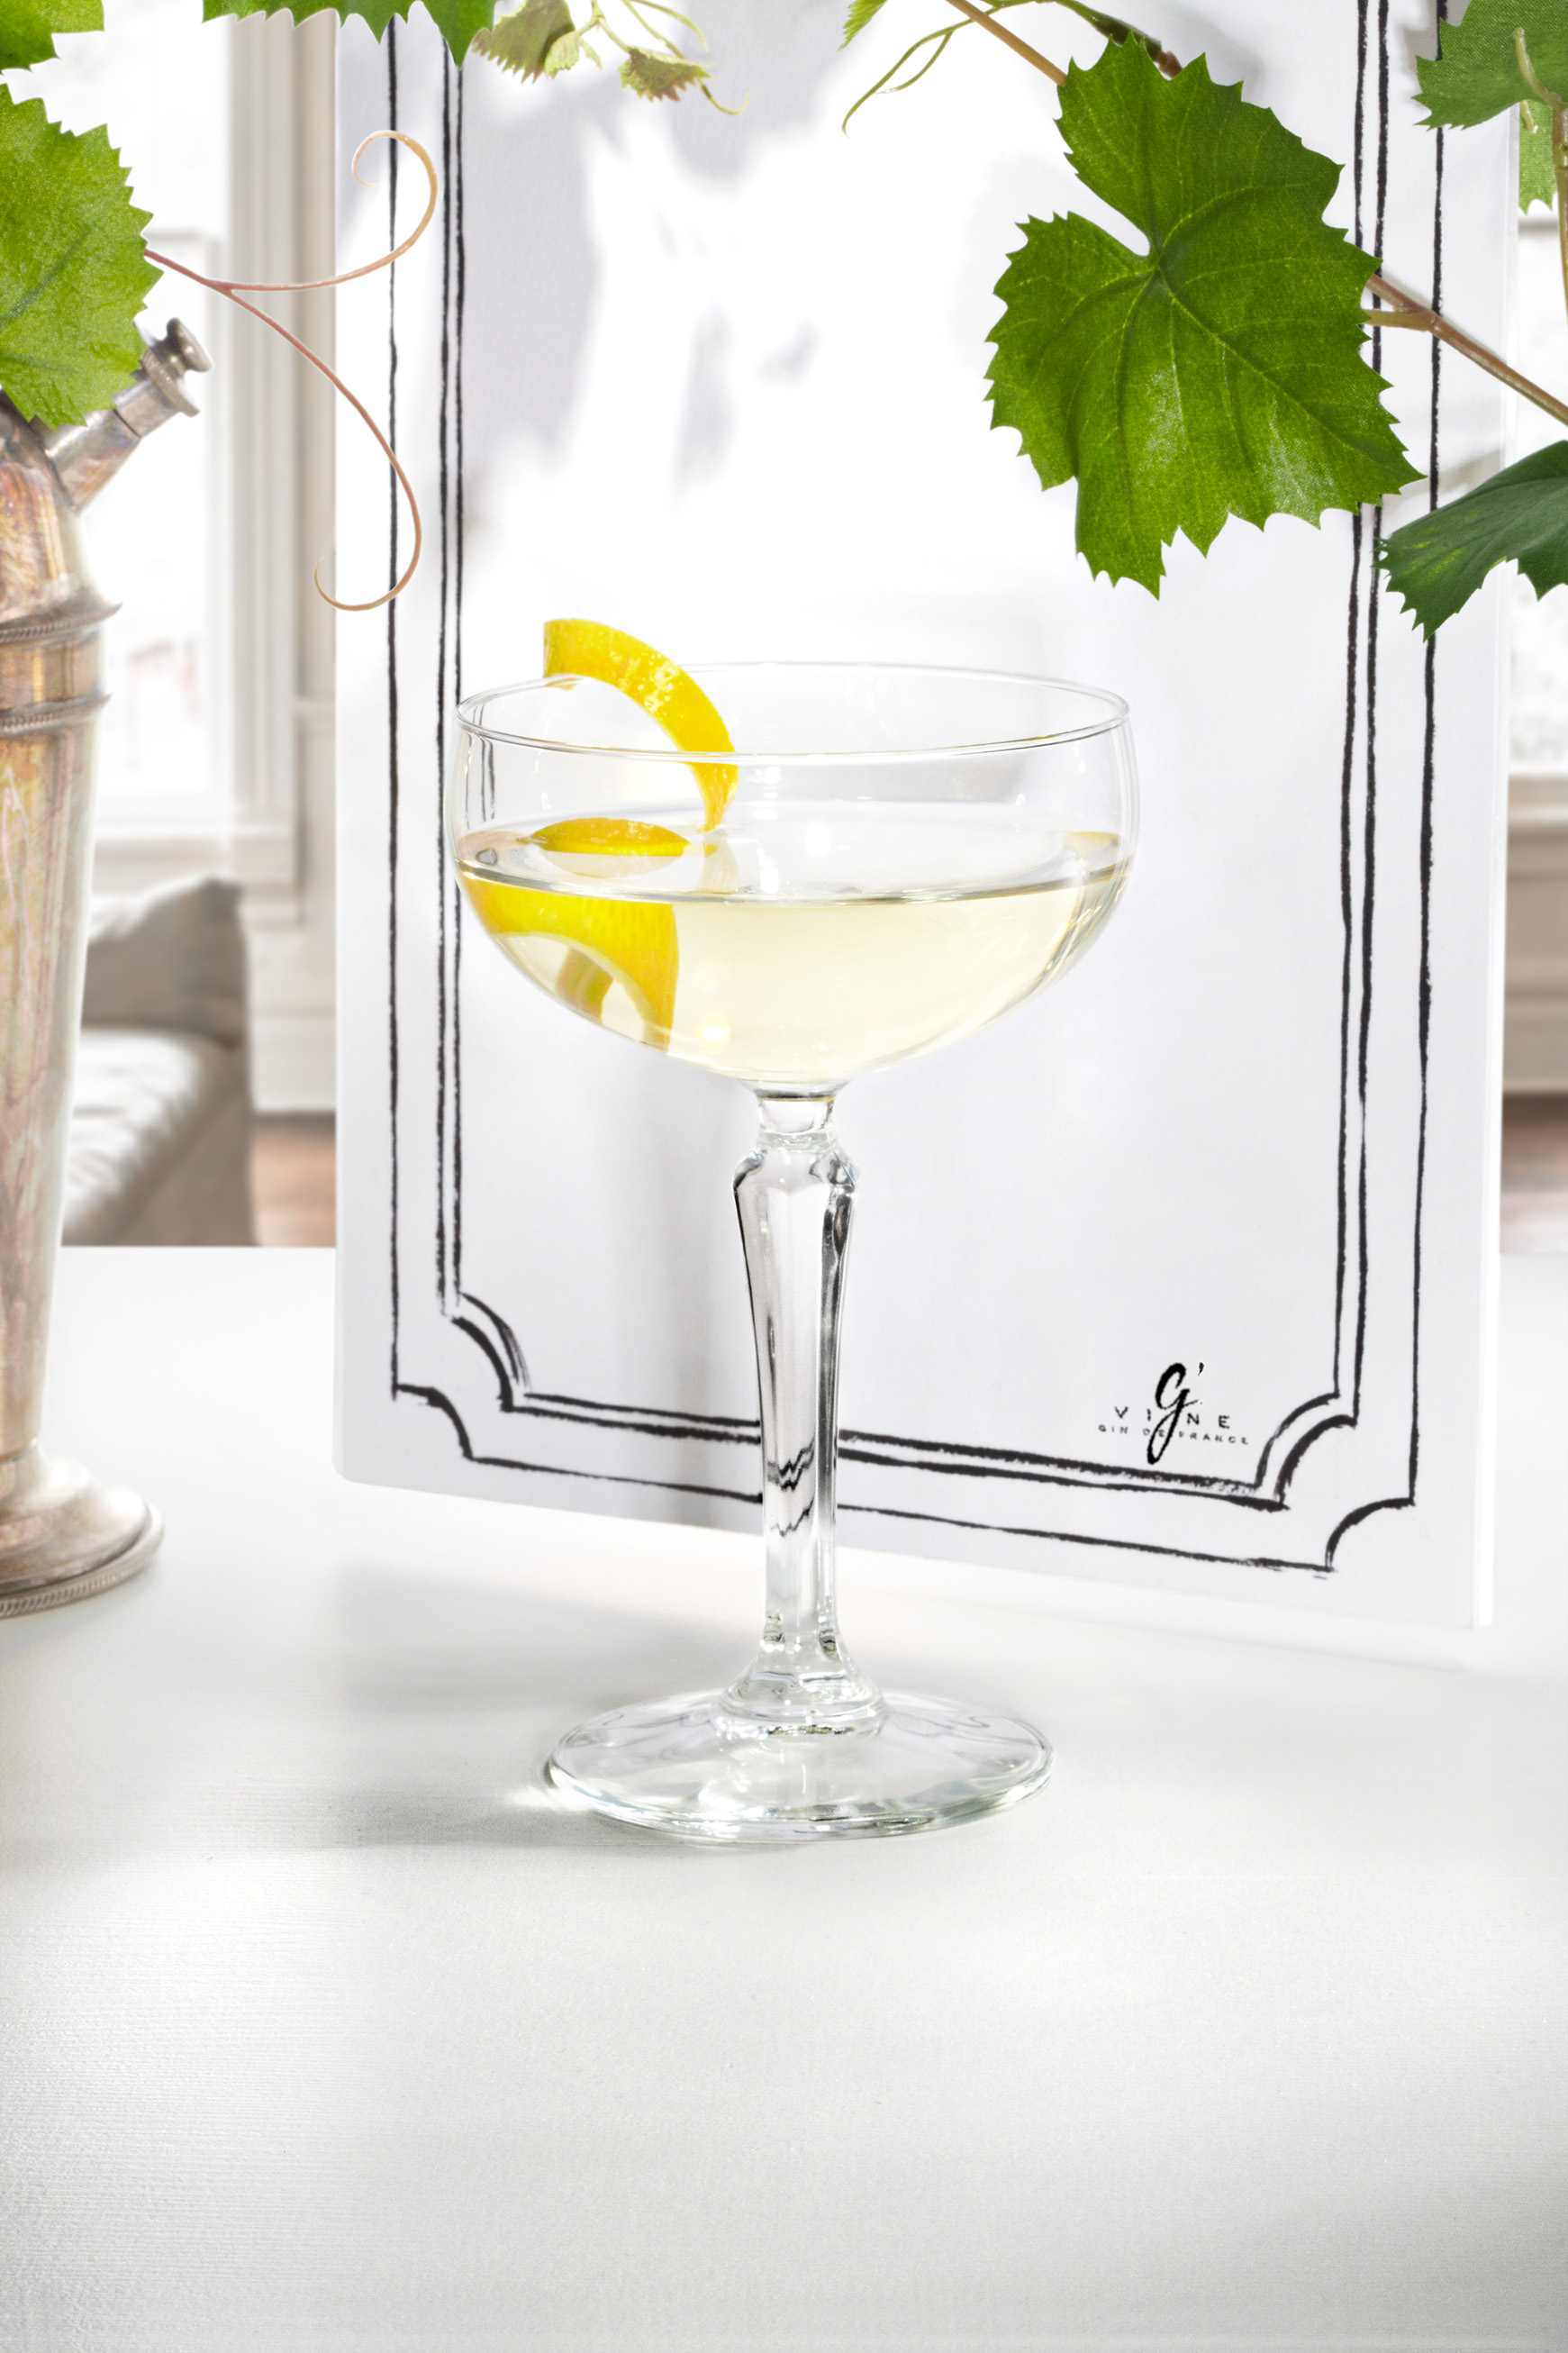 recette cocktail g u0026 39 vine martini